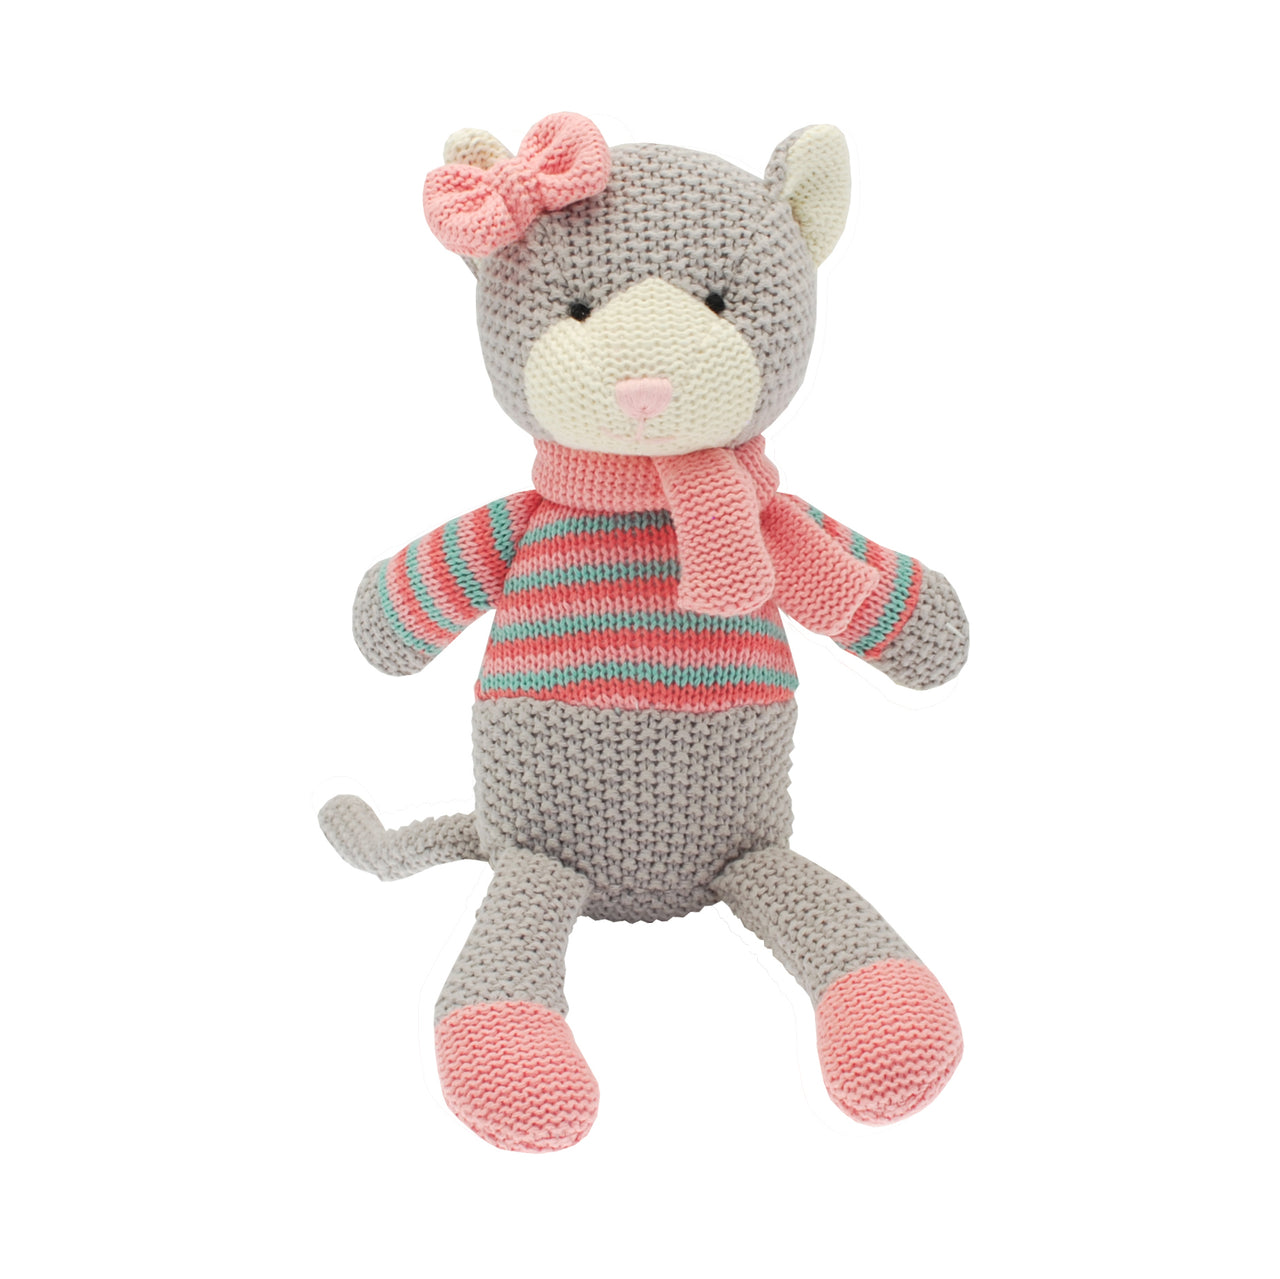 Katie Cat Knitted Toy - Kids Room Decor | Toys Gifts | Childrens Interiors | Rooms for Rascals